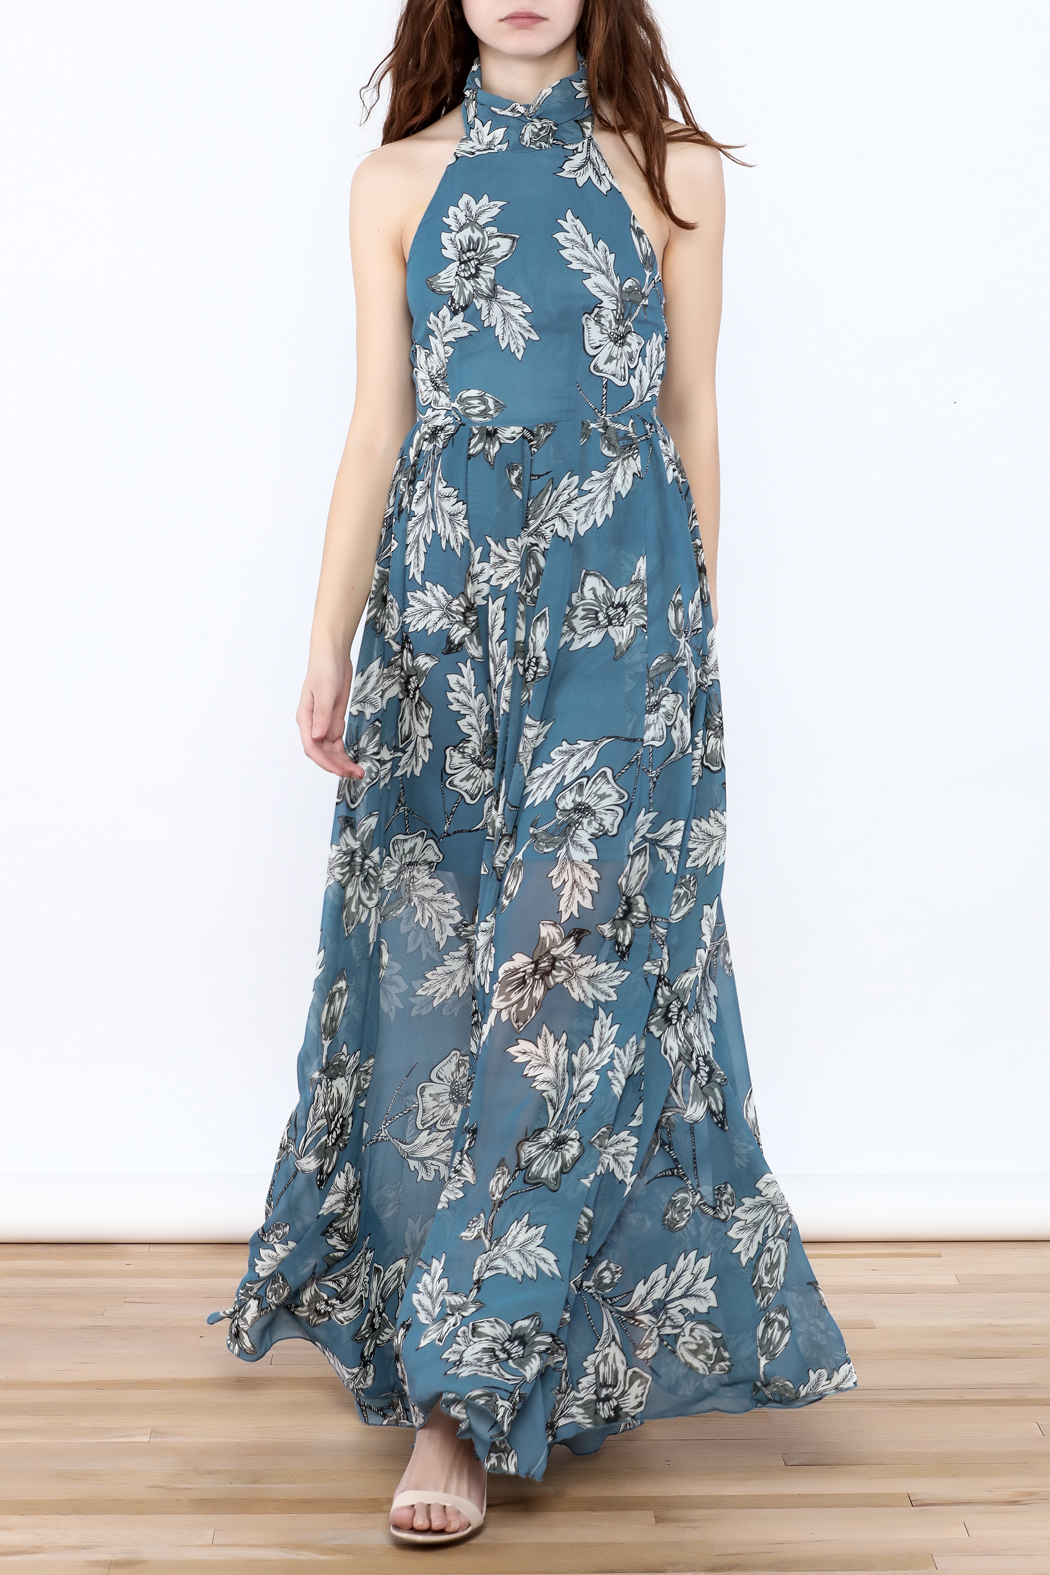 Xtaren Ivory Floral Maxi Dress - Main Image